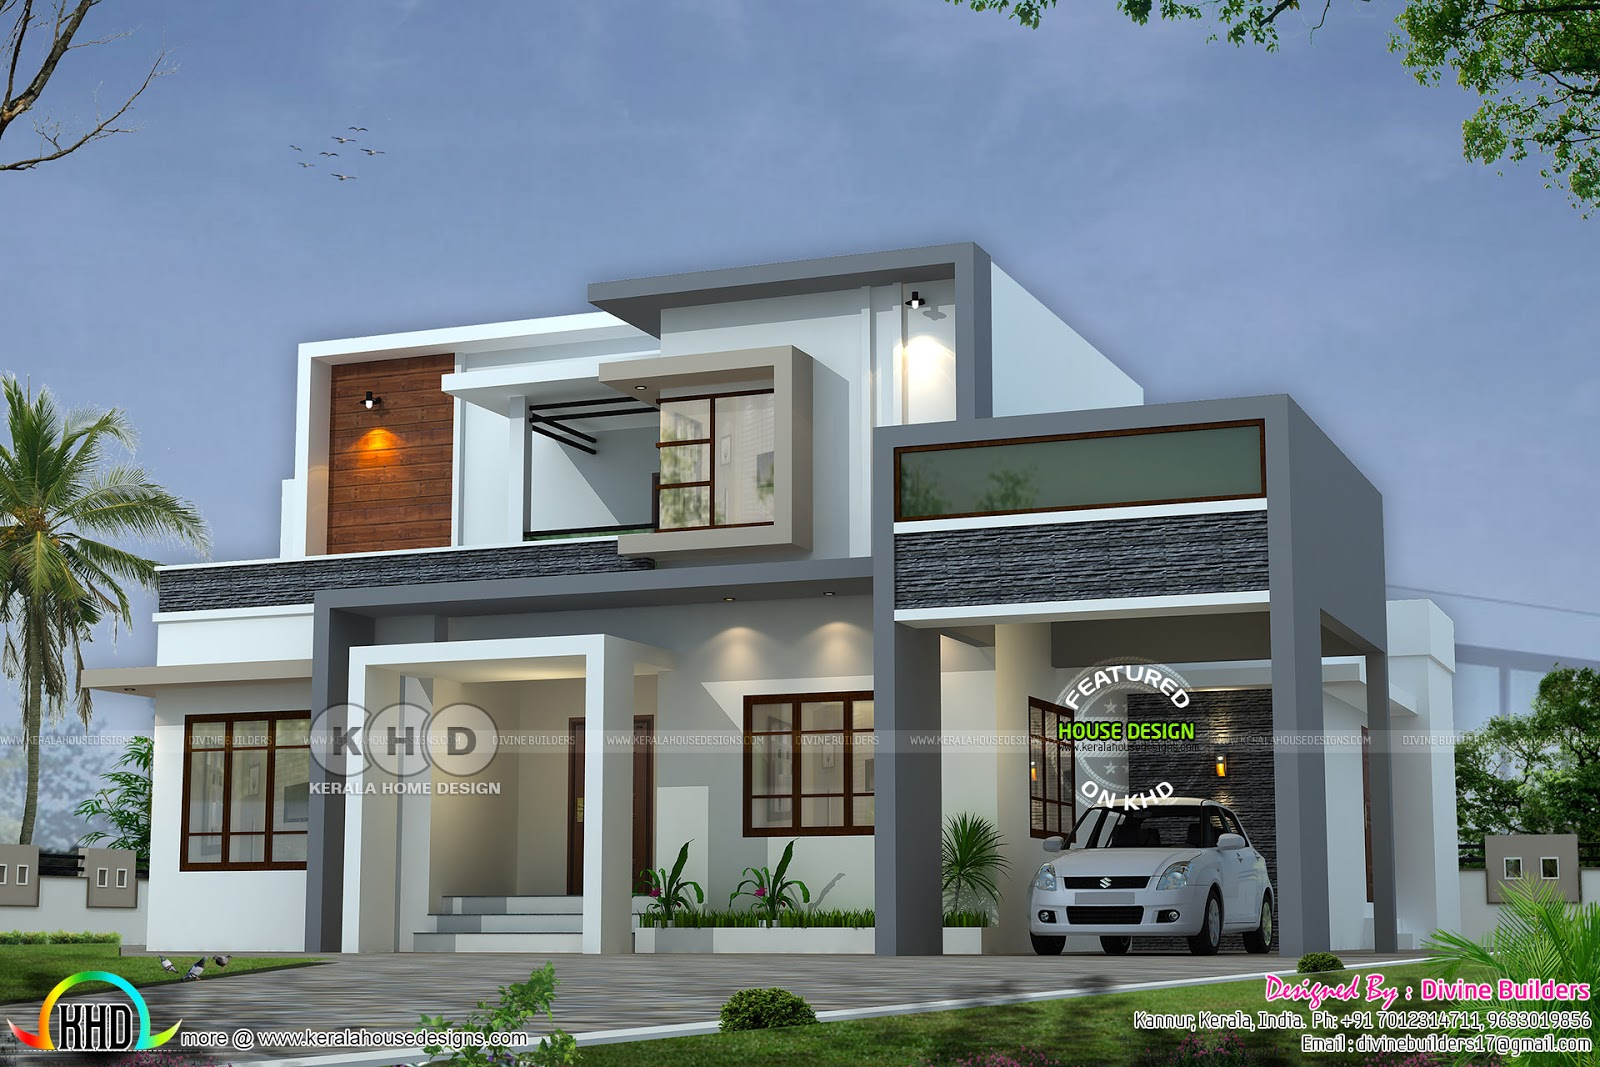 2017 kerala home design and floor plans for Home plans designs